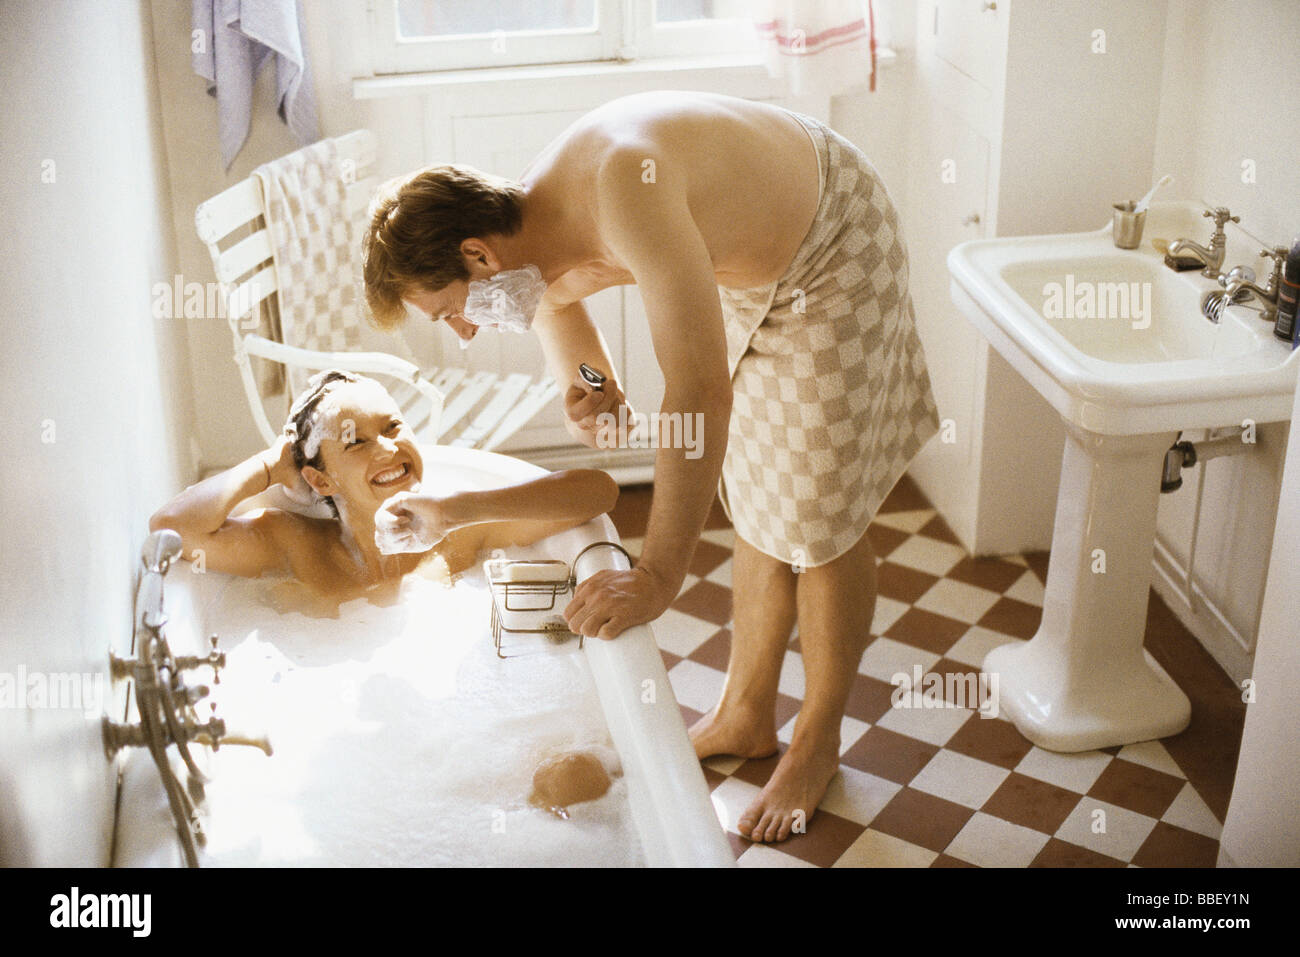 Couple together in bathroom, woman in bathtub, man leaning over her with shaving cream on face - Stock Image